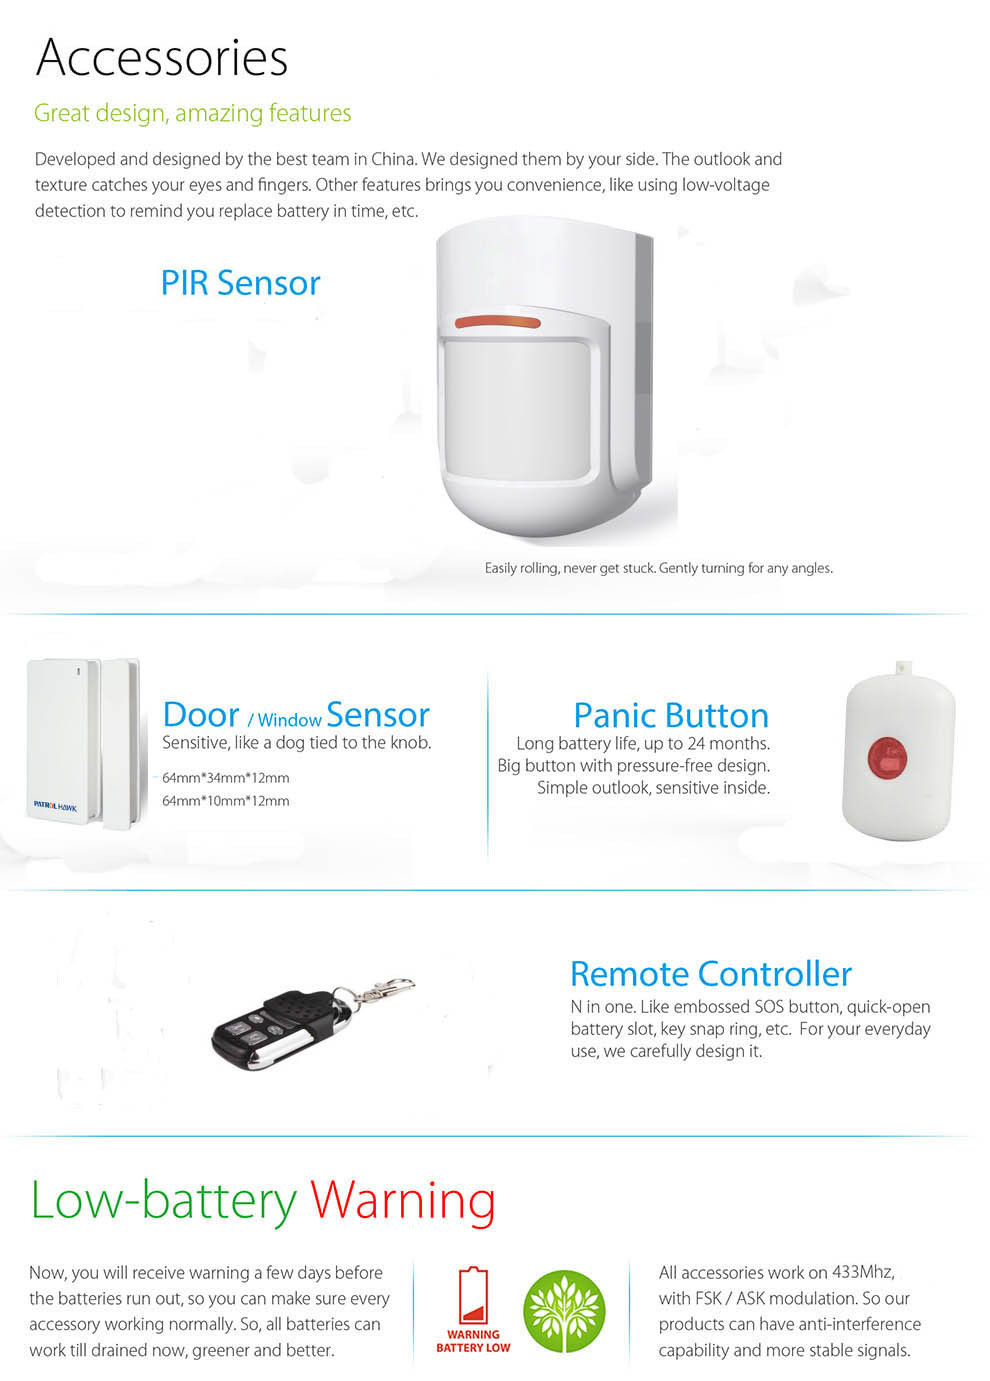 how to start a security alarm business